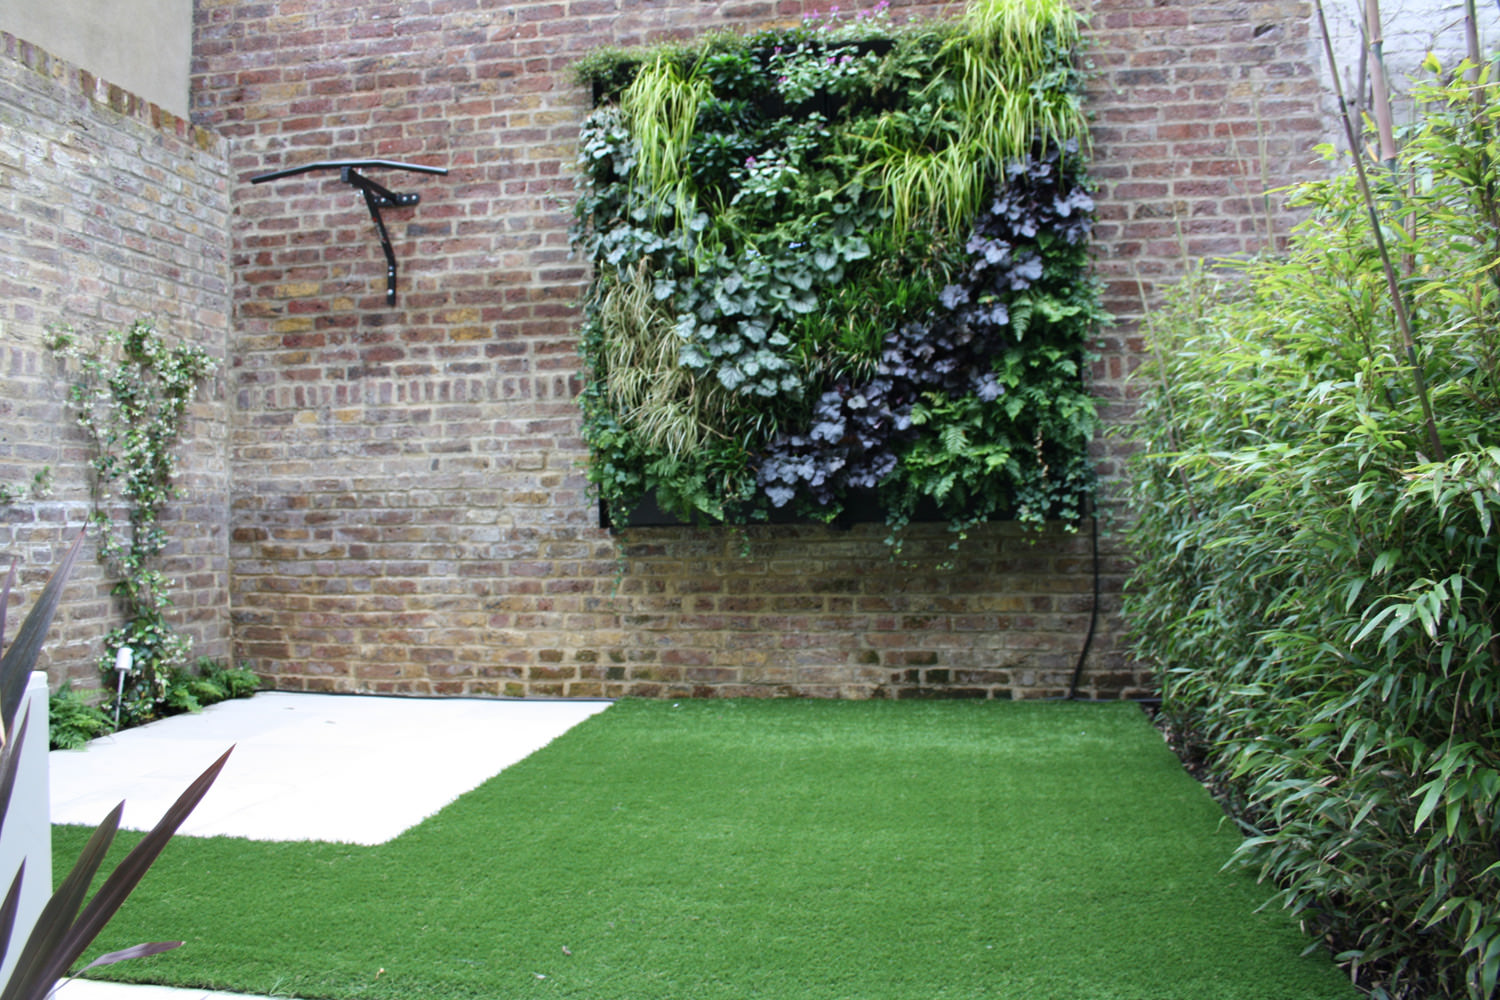 Top 10 london garden designs garden club london for Best garden designers